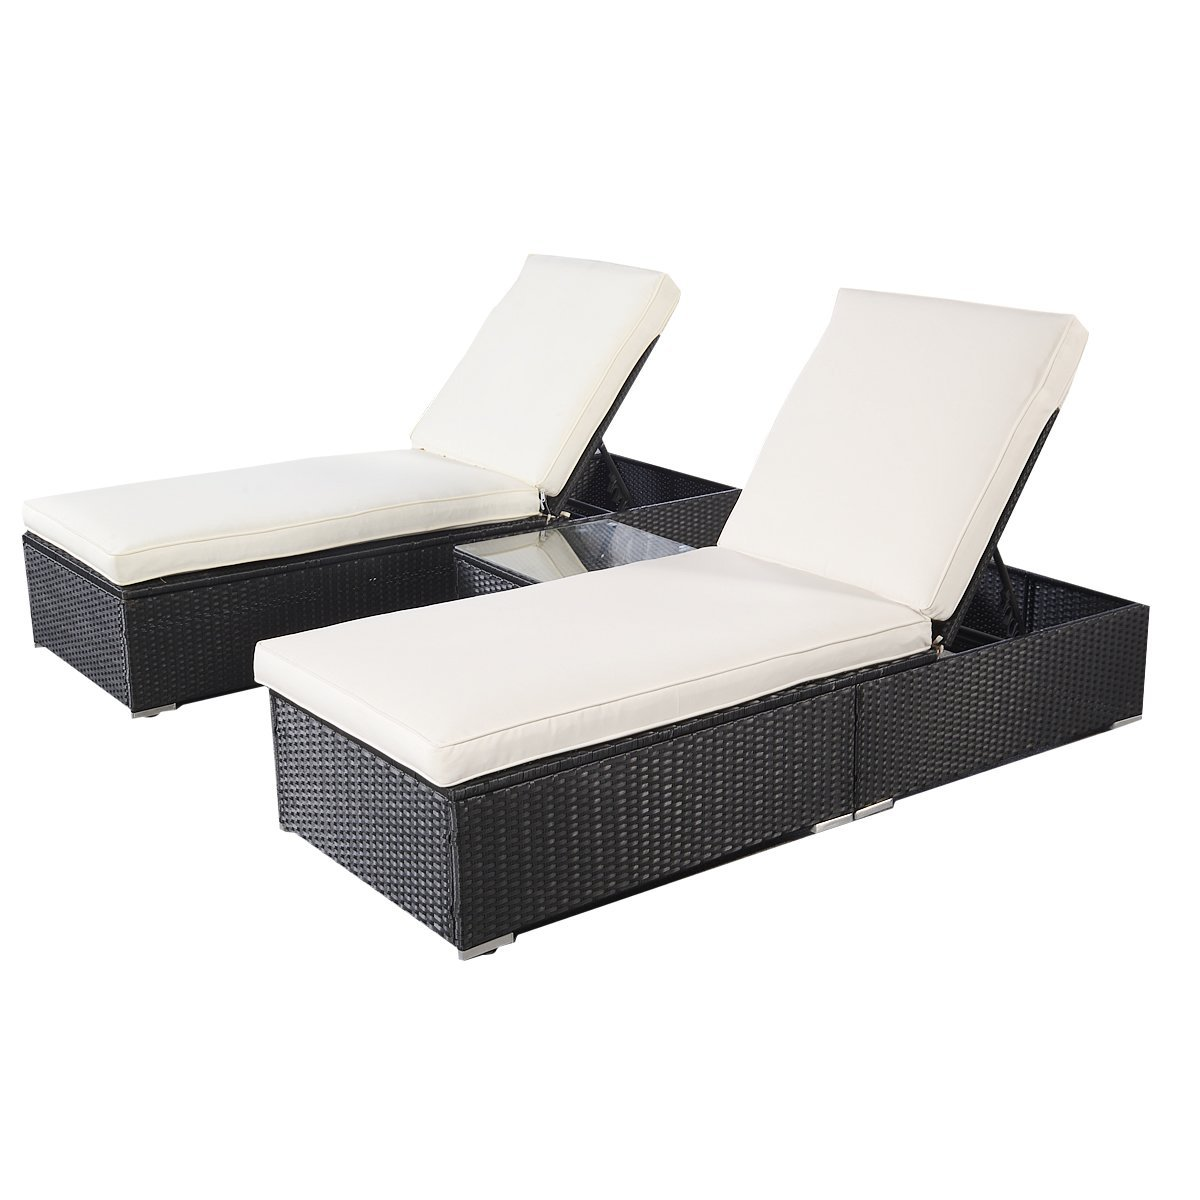 Tangkula 3-piece Chaise Lounge Chair